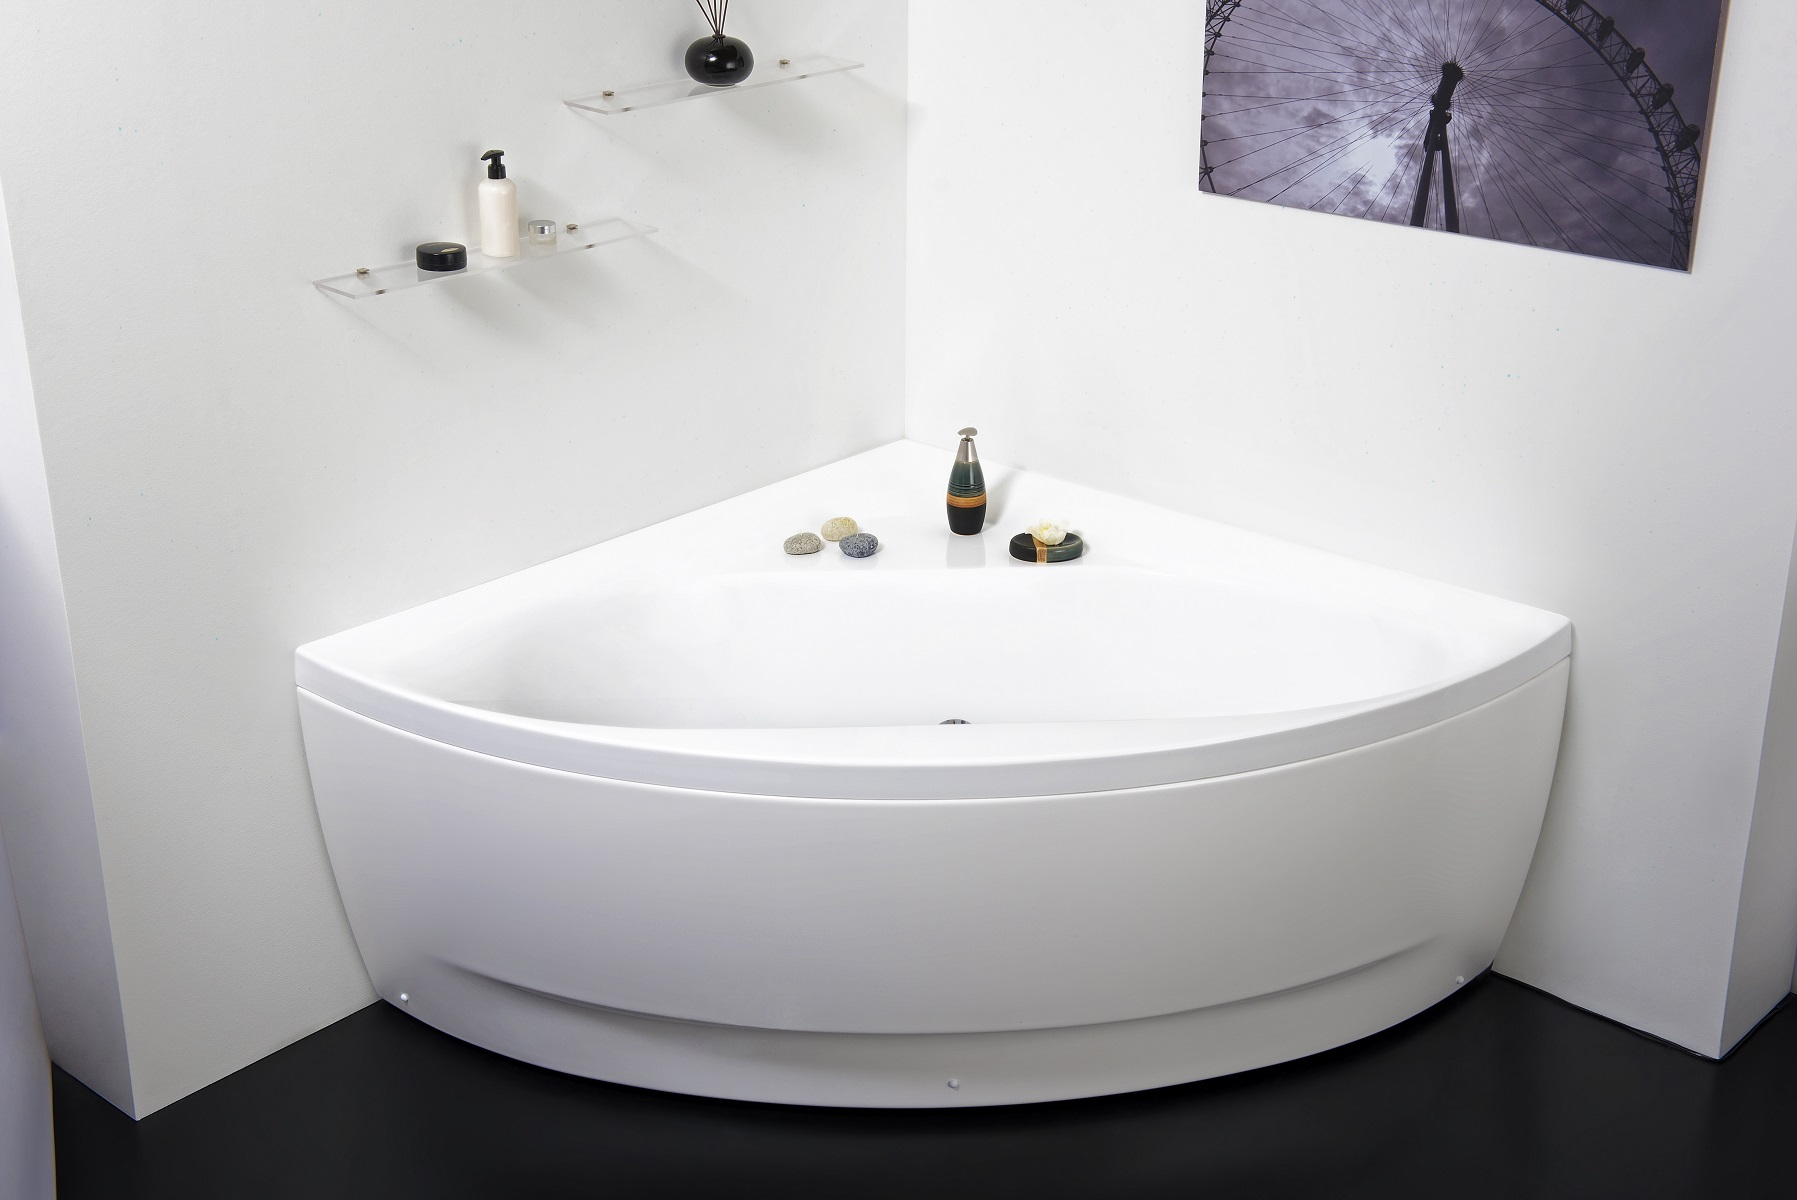 Aquaticau0027s Olivia Corner Tub Is A Timeless Model, Which Has Been Designed  To Suit Small Contemporary Bathrooms. Crafted Using Premium Acrylic Sheets  From ...